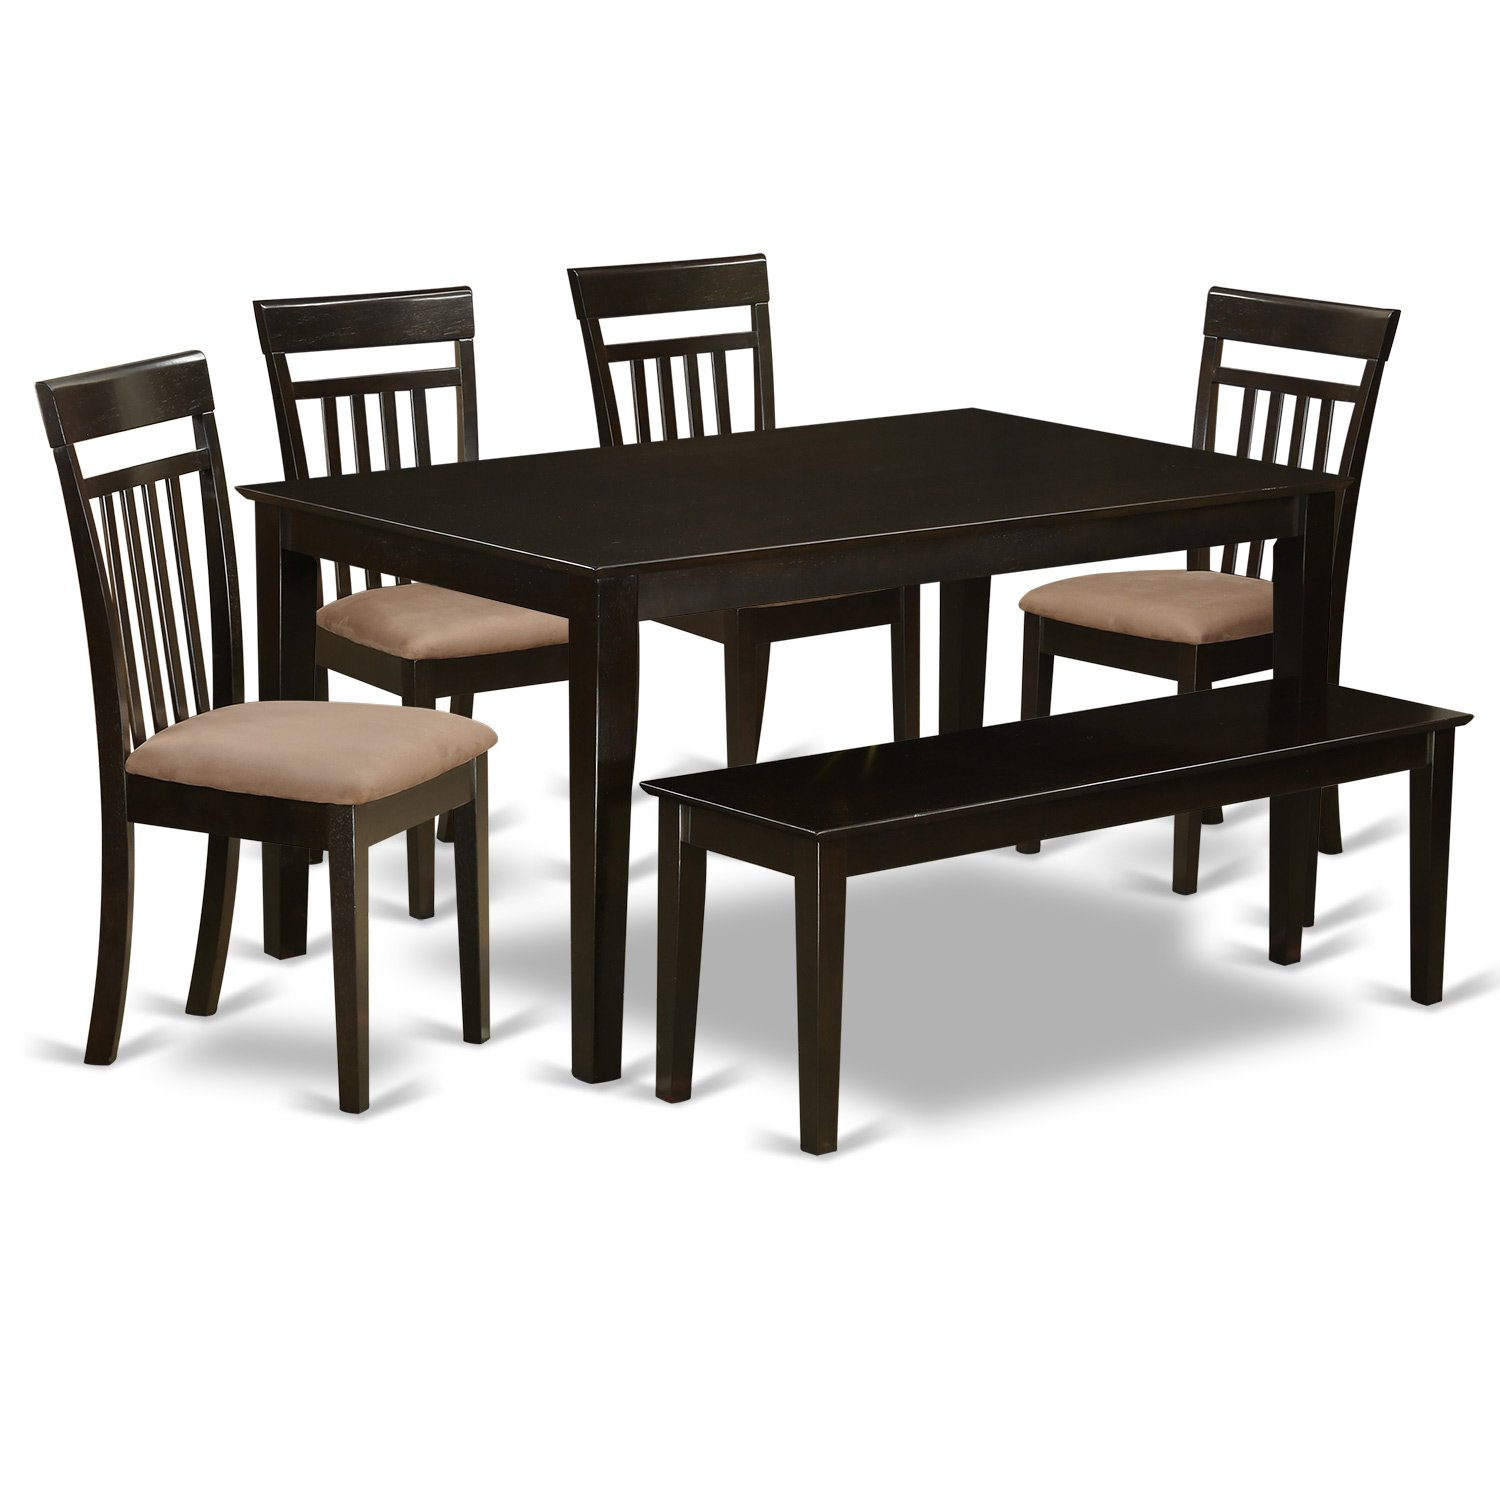 Amazon com cap6s cap c 6 pc dining room set top kitchen table and 4 kitchen chairs plus a bench kitchen dining